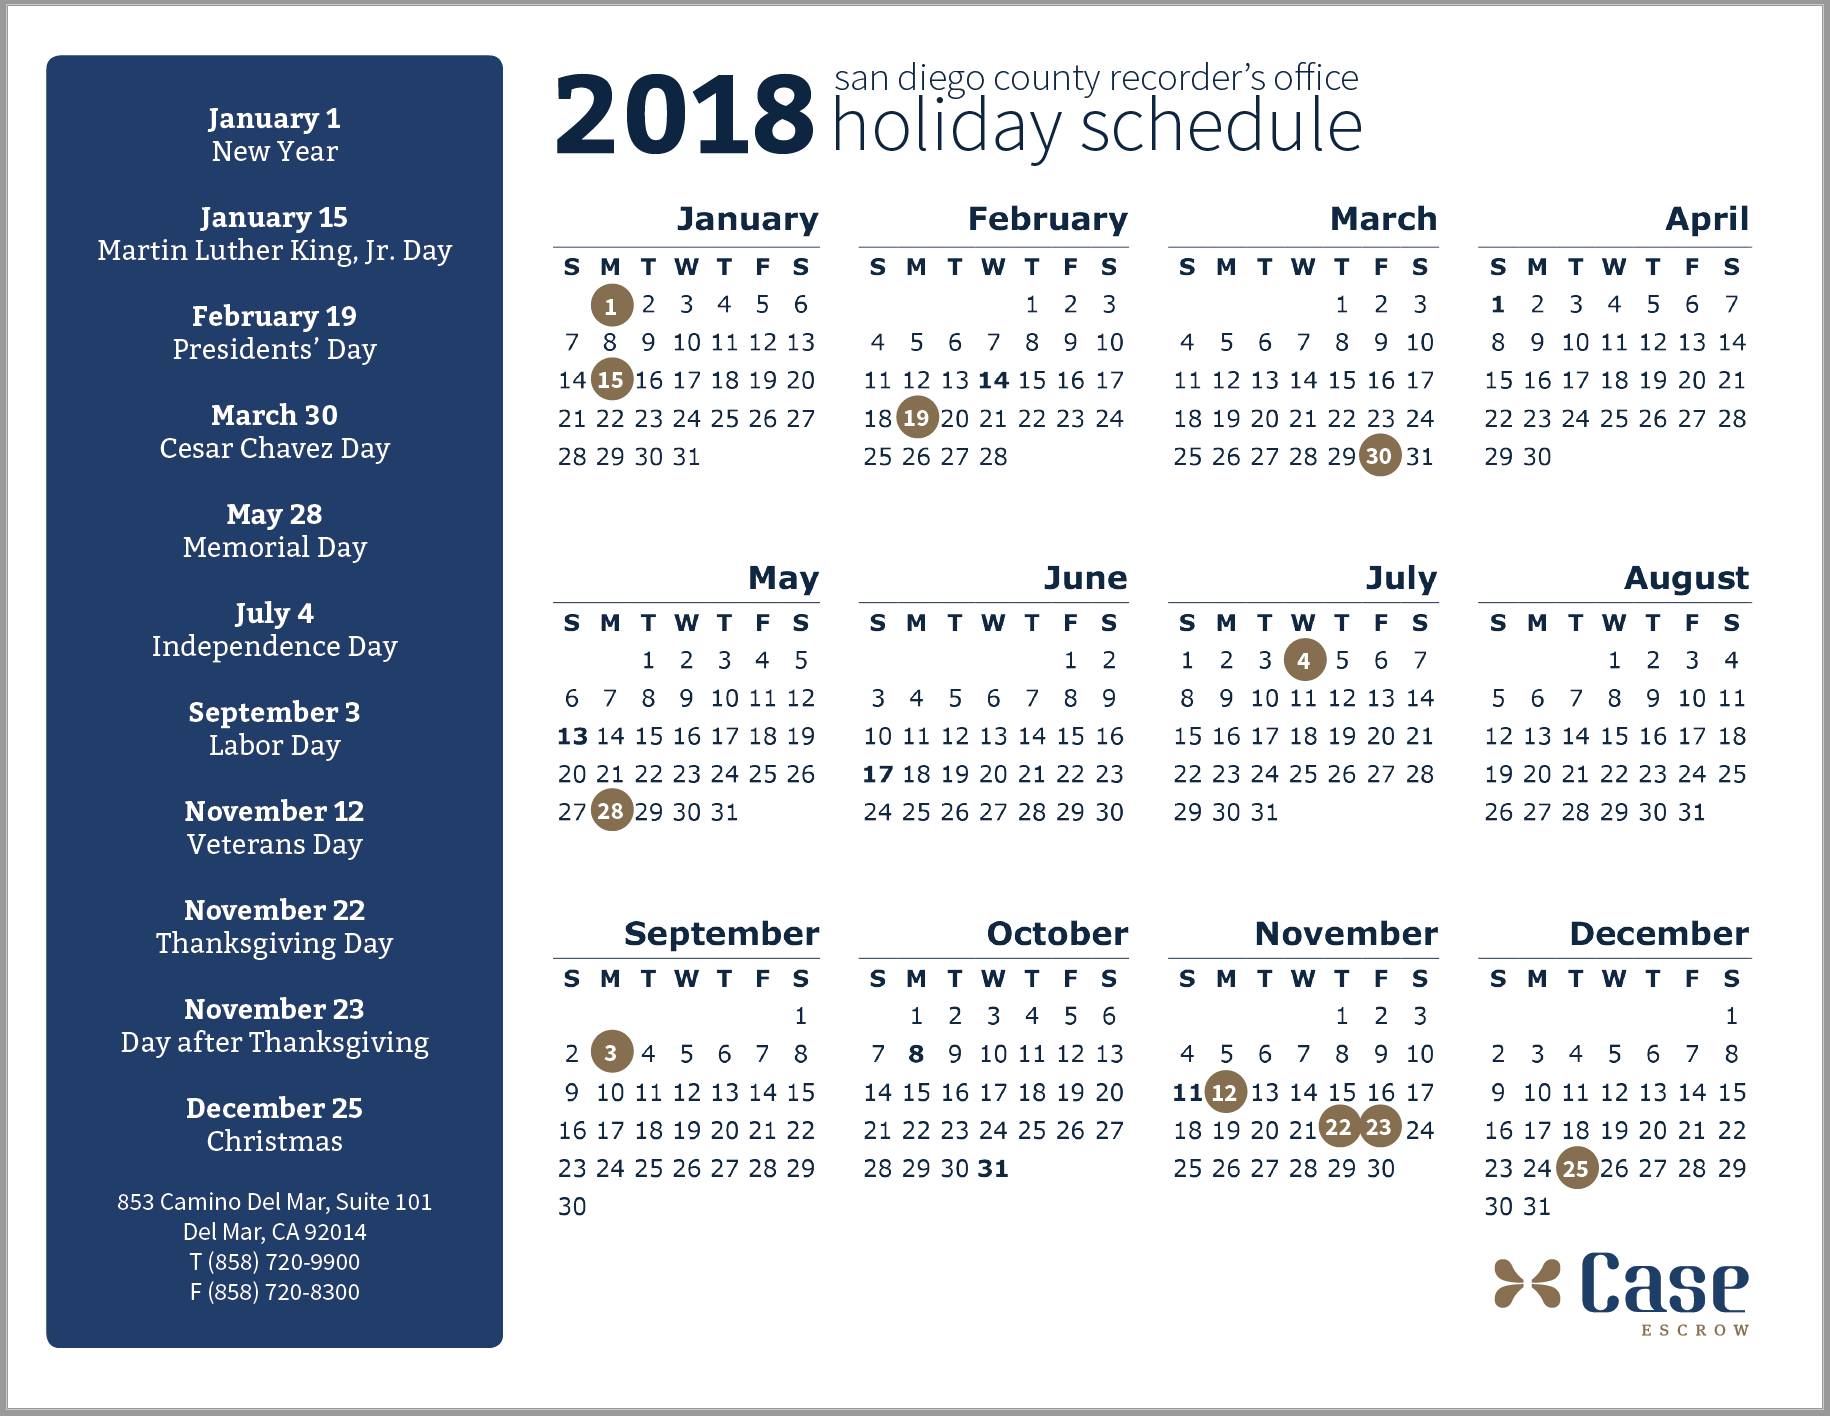 2018 San Diego County Recorder's Office Schedule